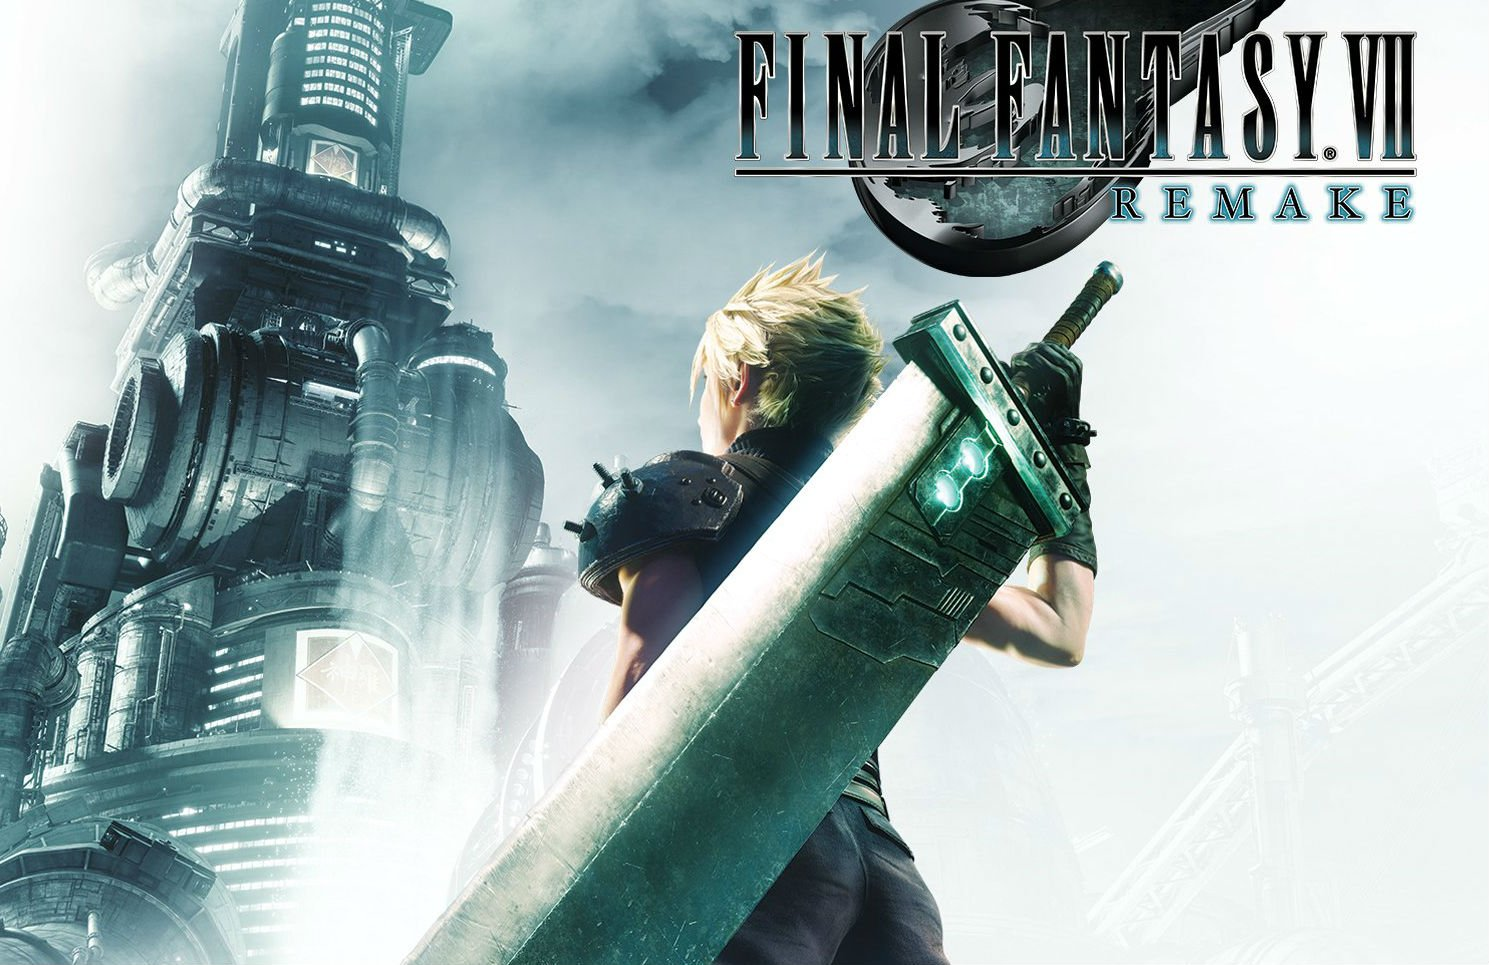 Final Fantasy VII Remake's box art aims for the nostalgia tendon, does not mention 'Part 1' screenshot